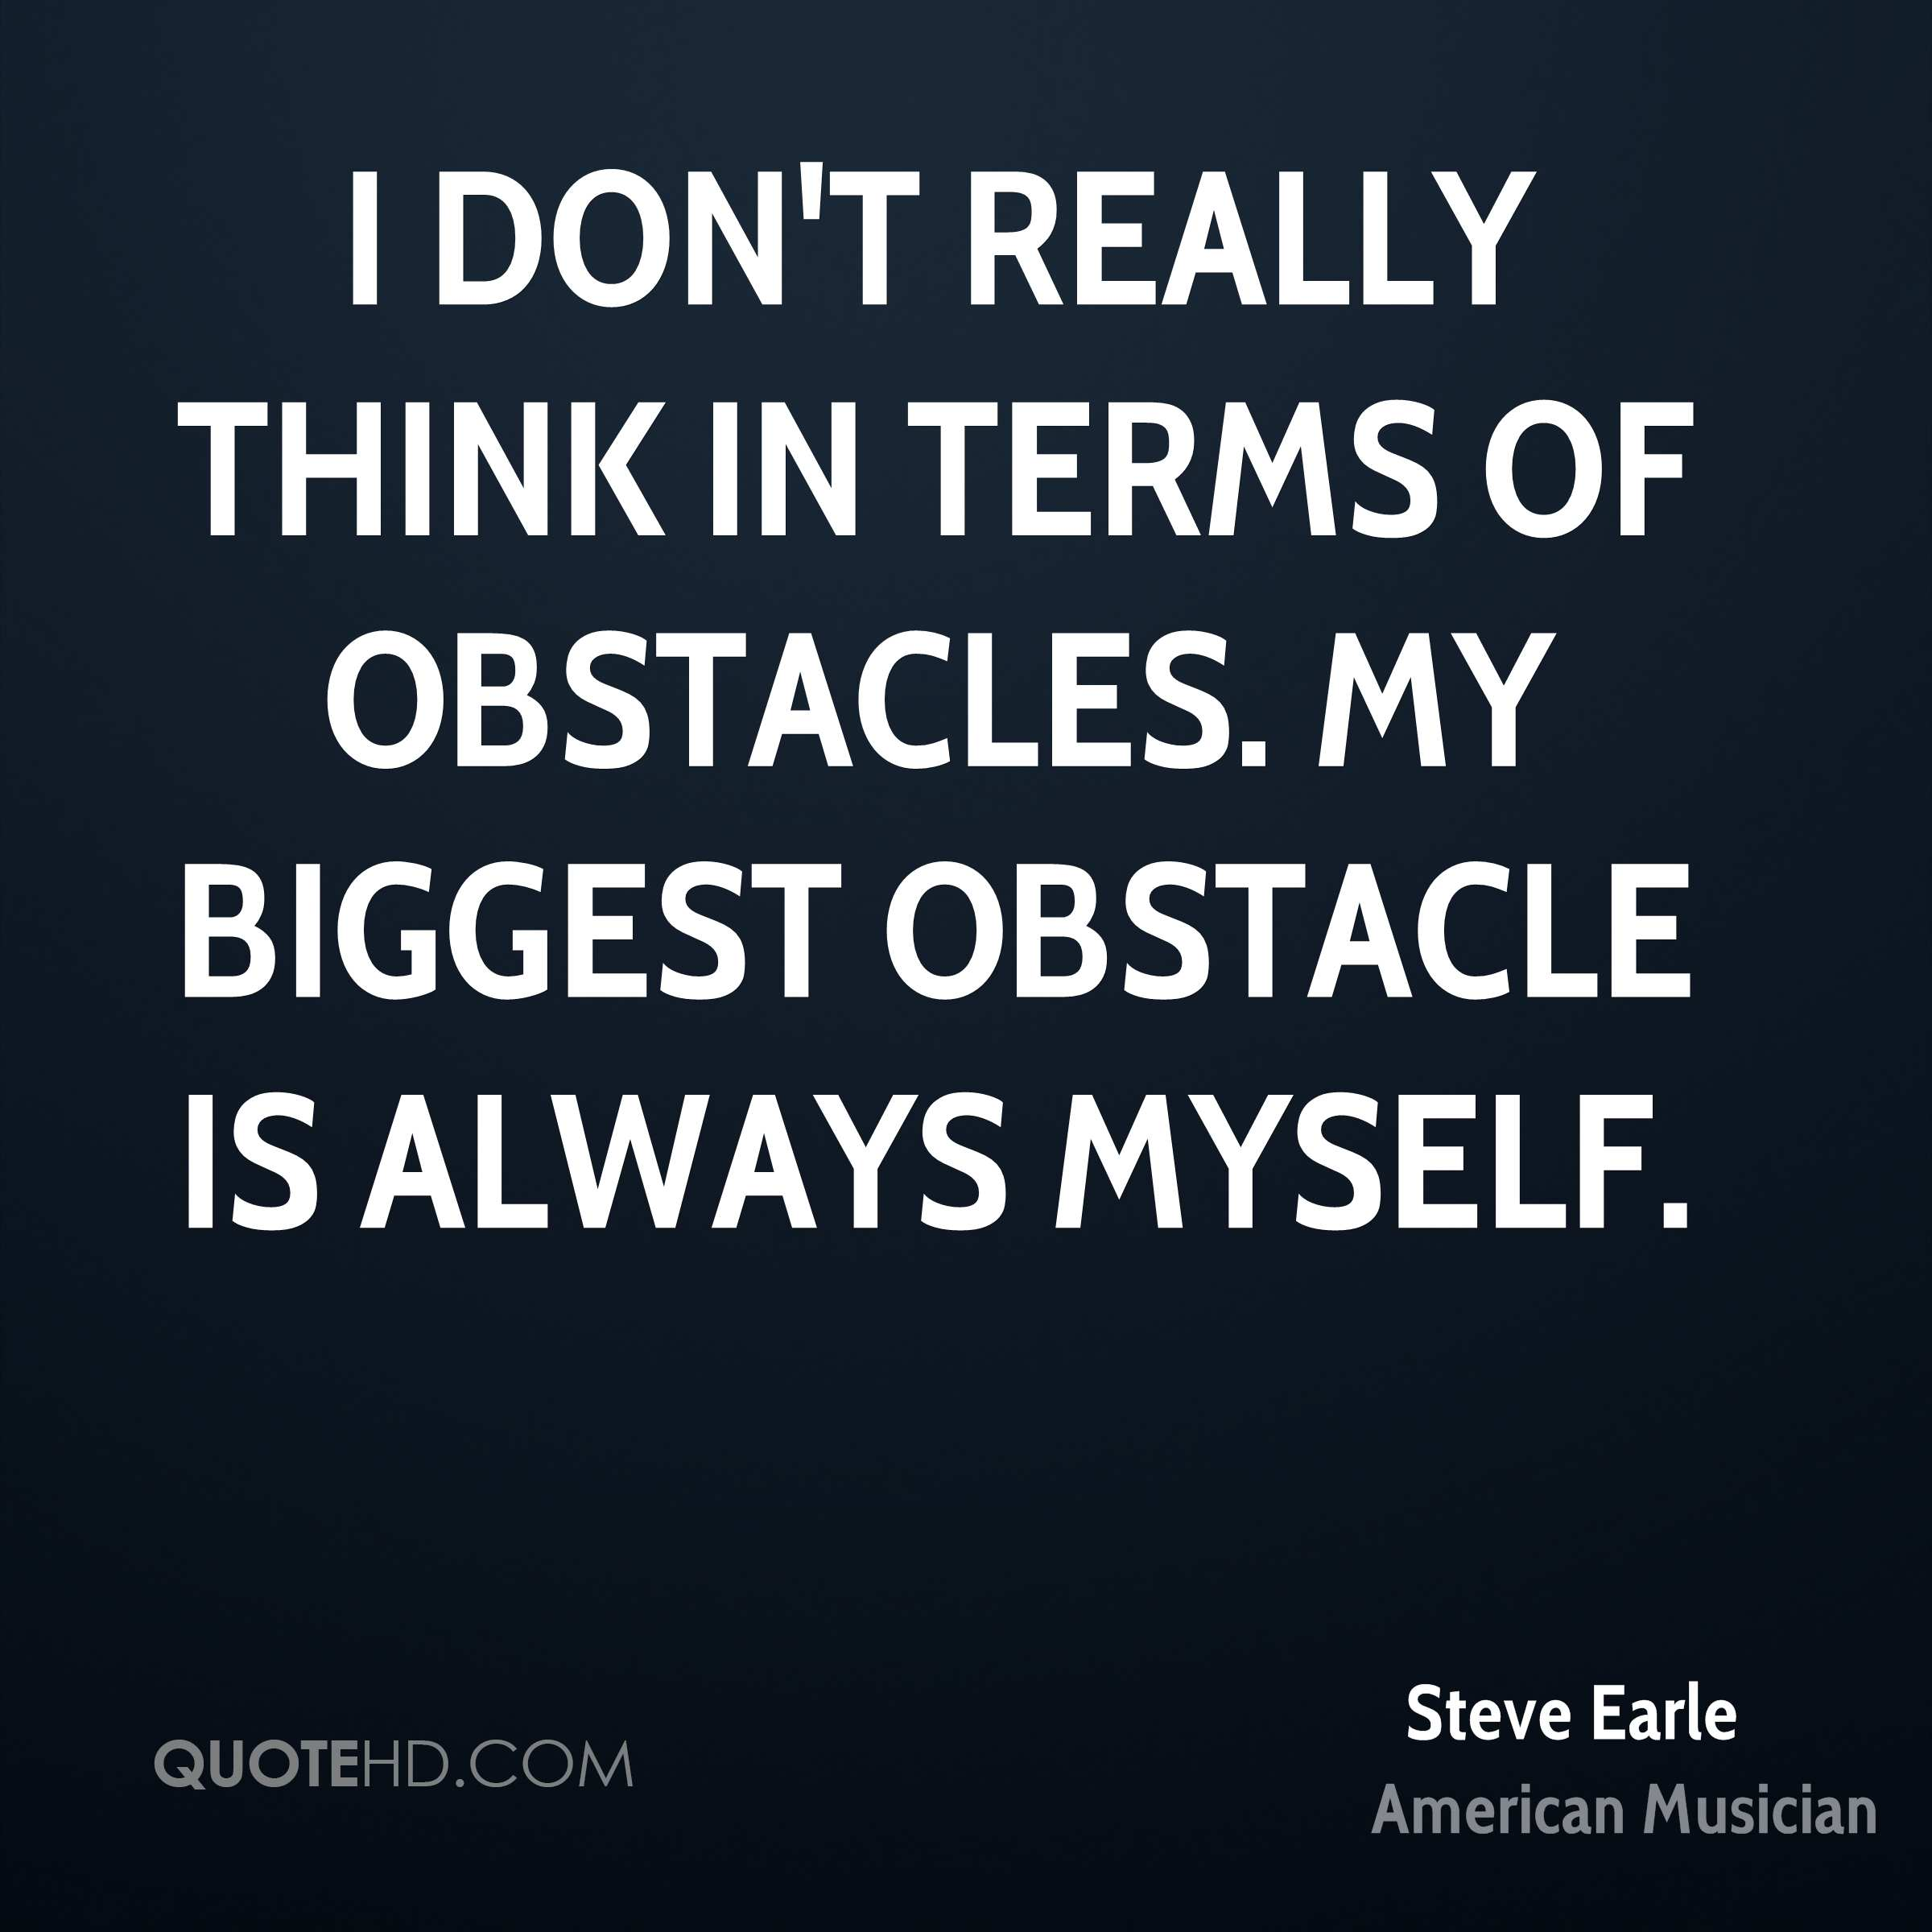 I don't really think in terms of obstacles. My biggest obstacle is always myself.